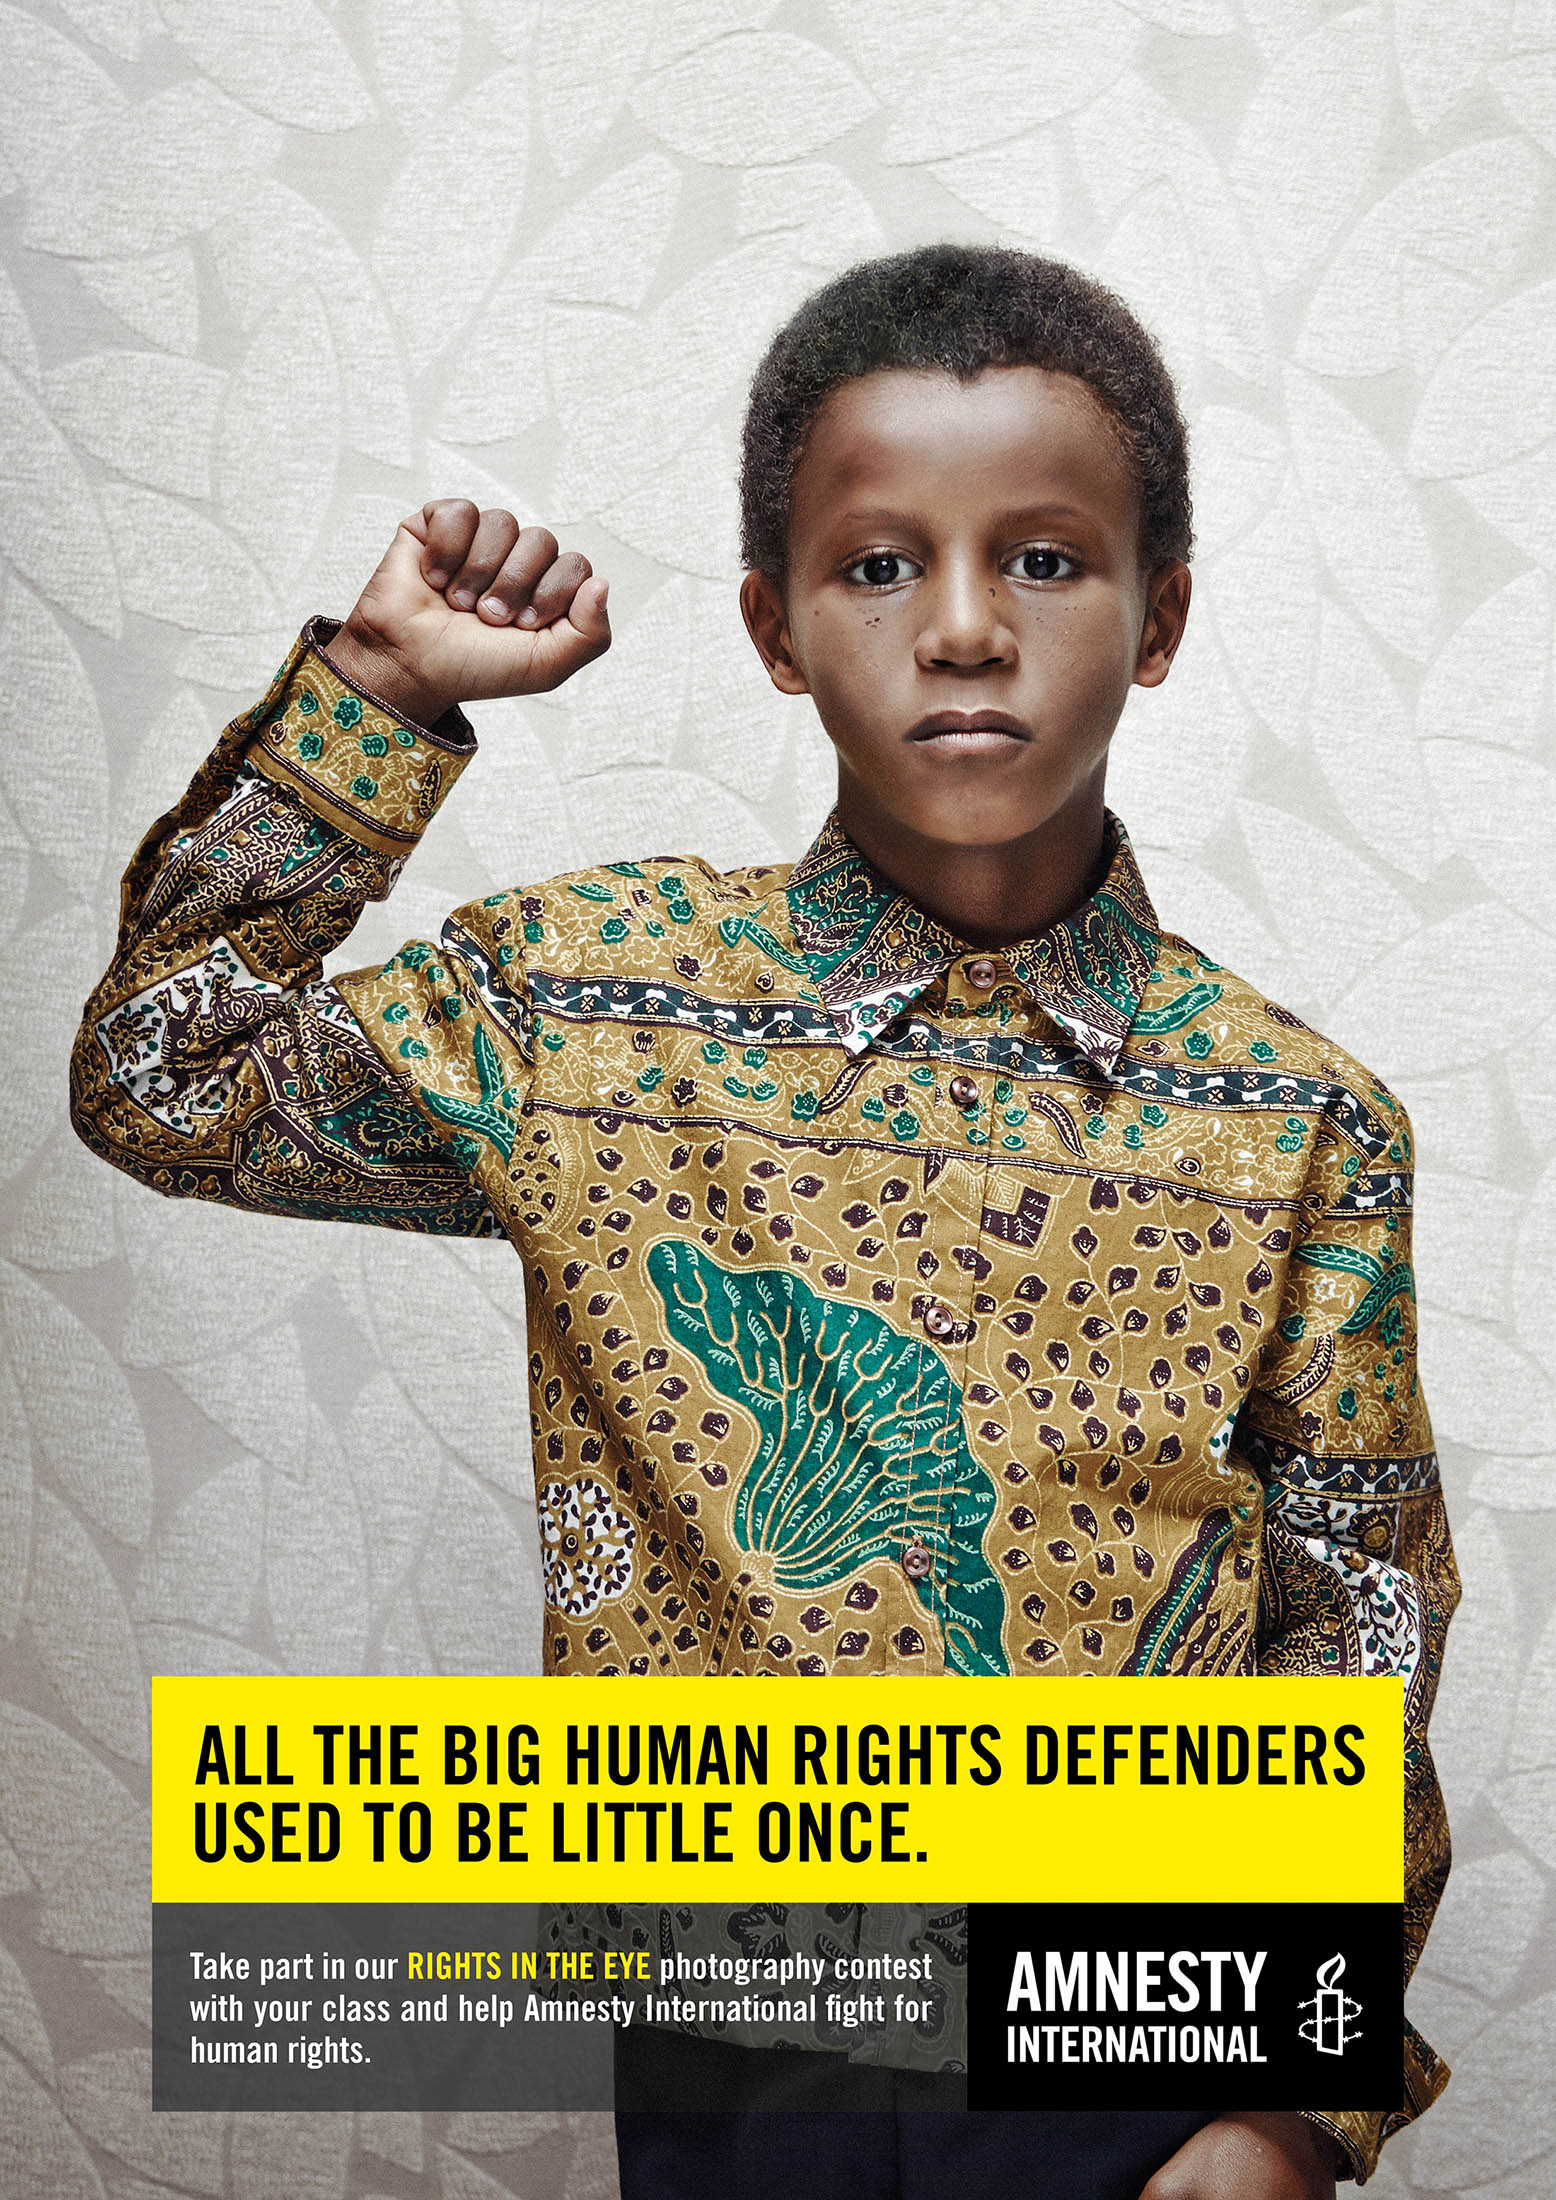 Amnesty International: Gandhi, Martin Luther King, Nelson